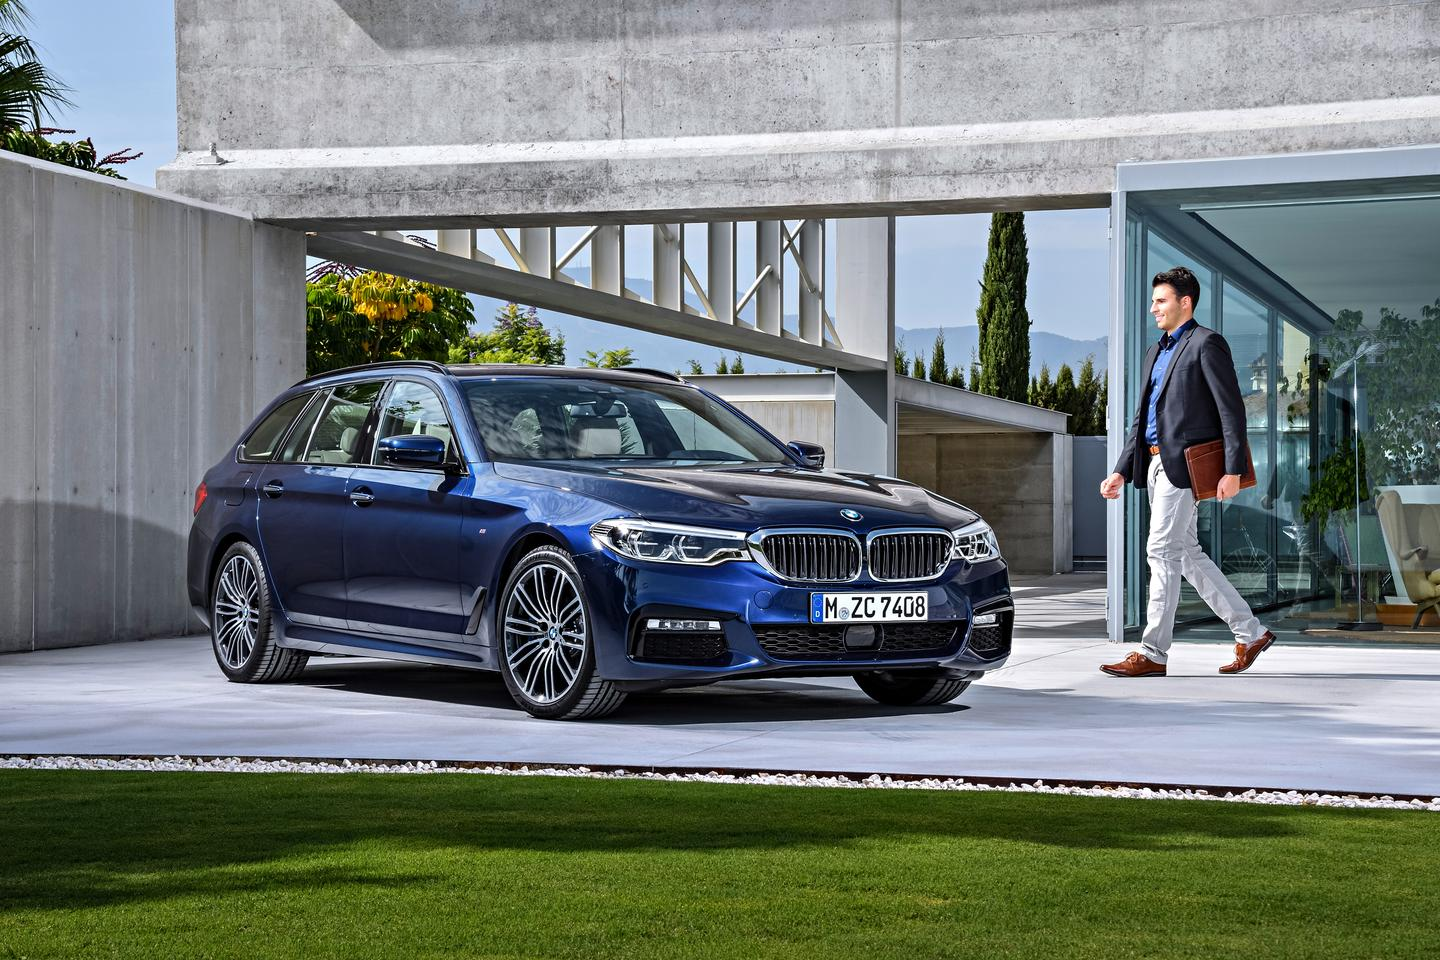 The new BMW 5 Series Touring is a pretty take on the wagon formula